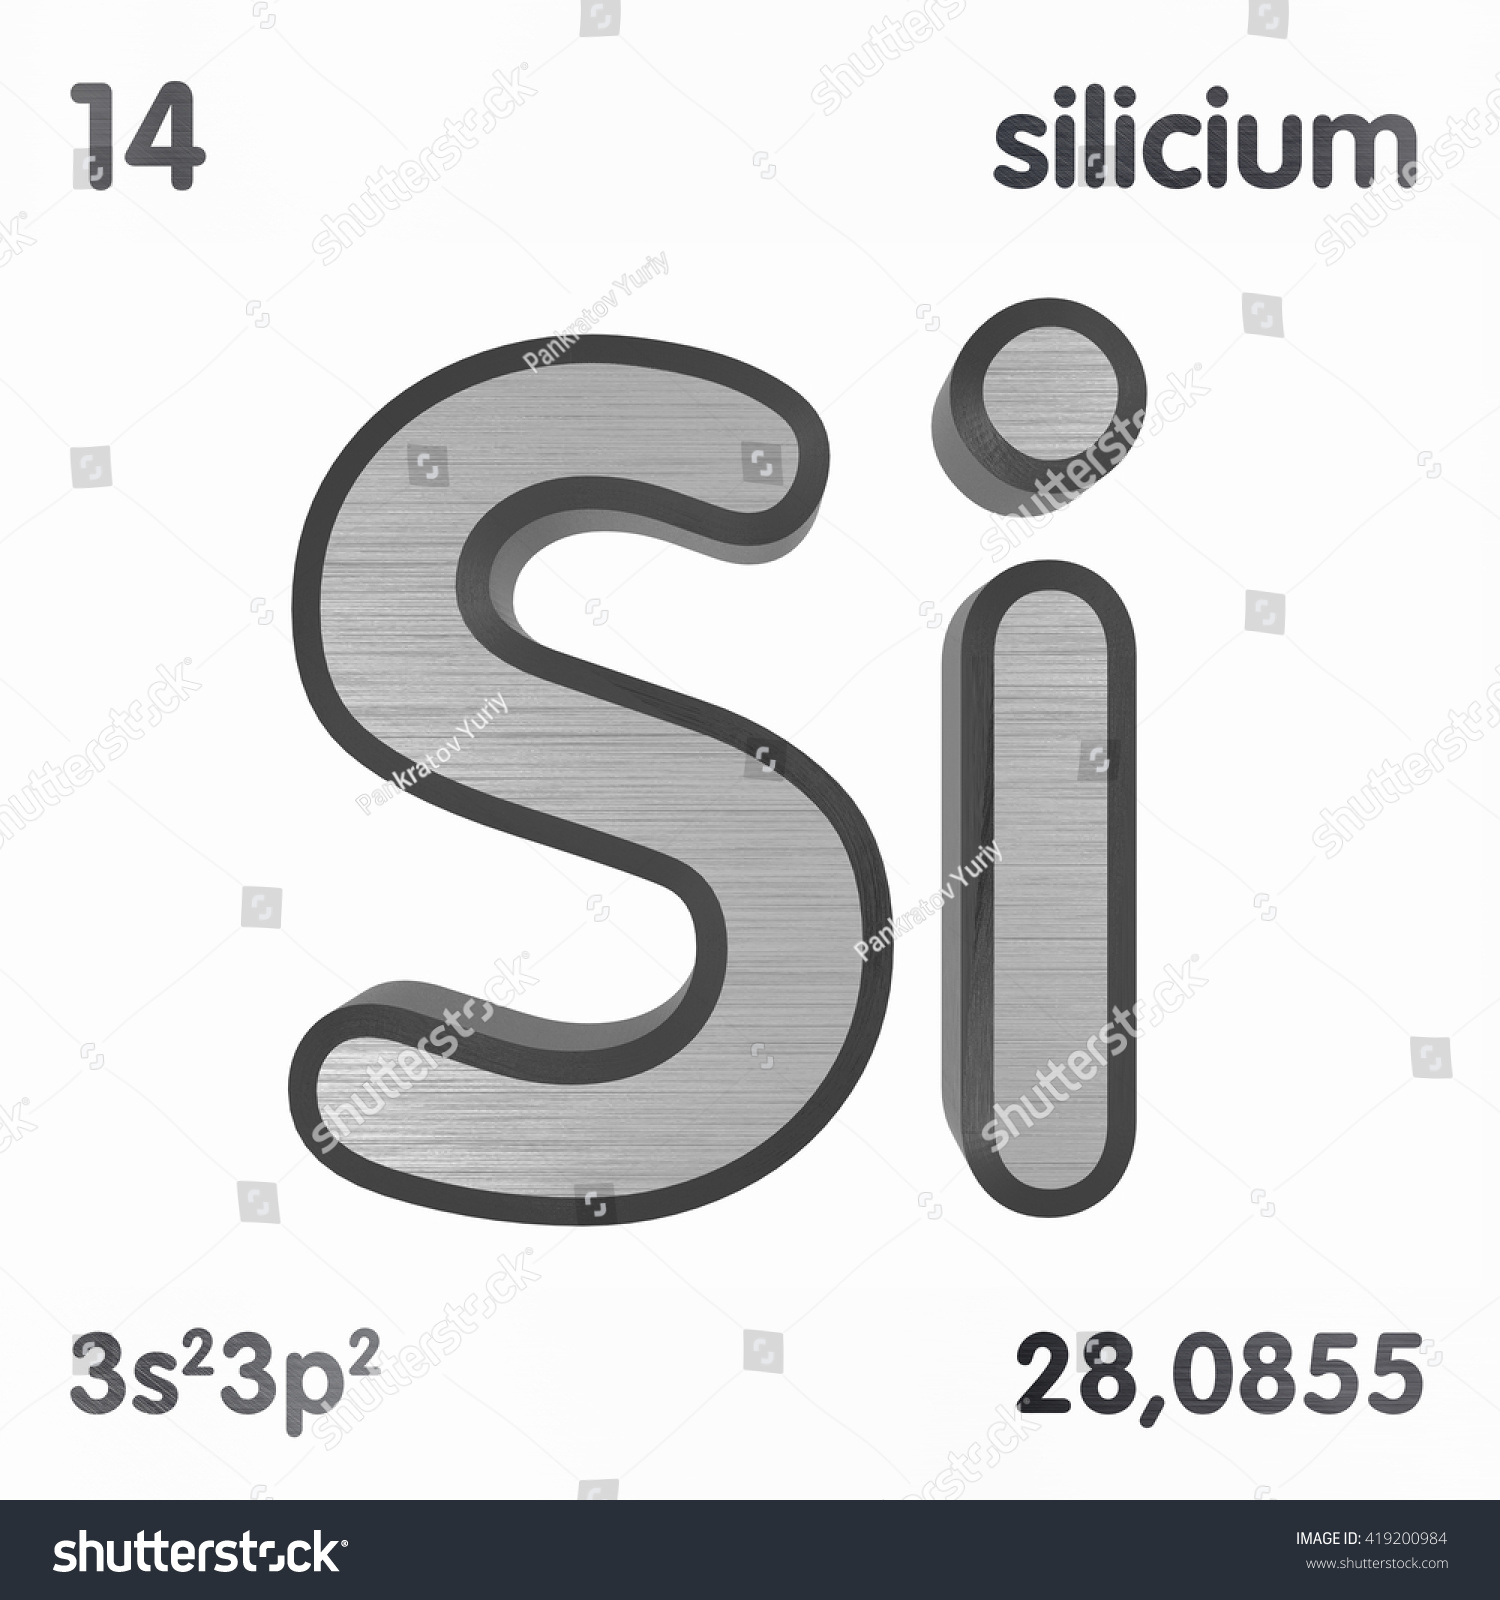 Periodic table elements silicon 3d title stock illustration periodic table of elements silicon 3d title isolated on white 3d rendering biocorpaavc Gallery